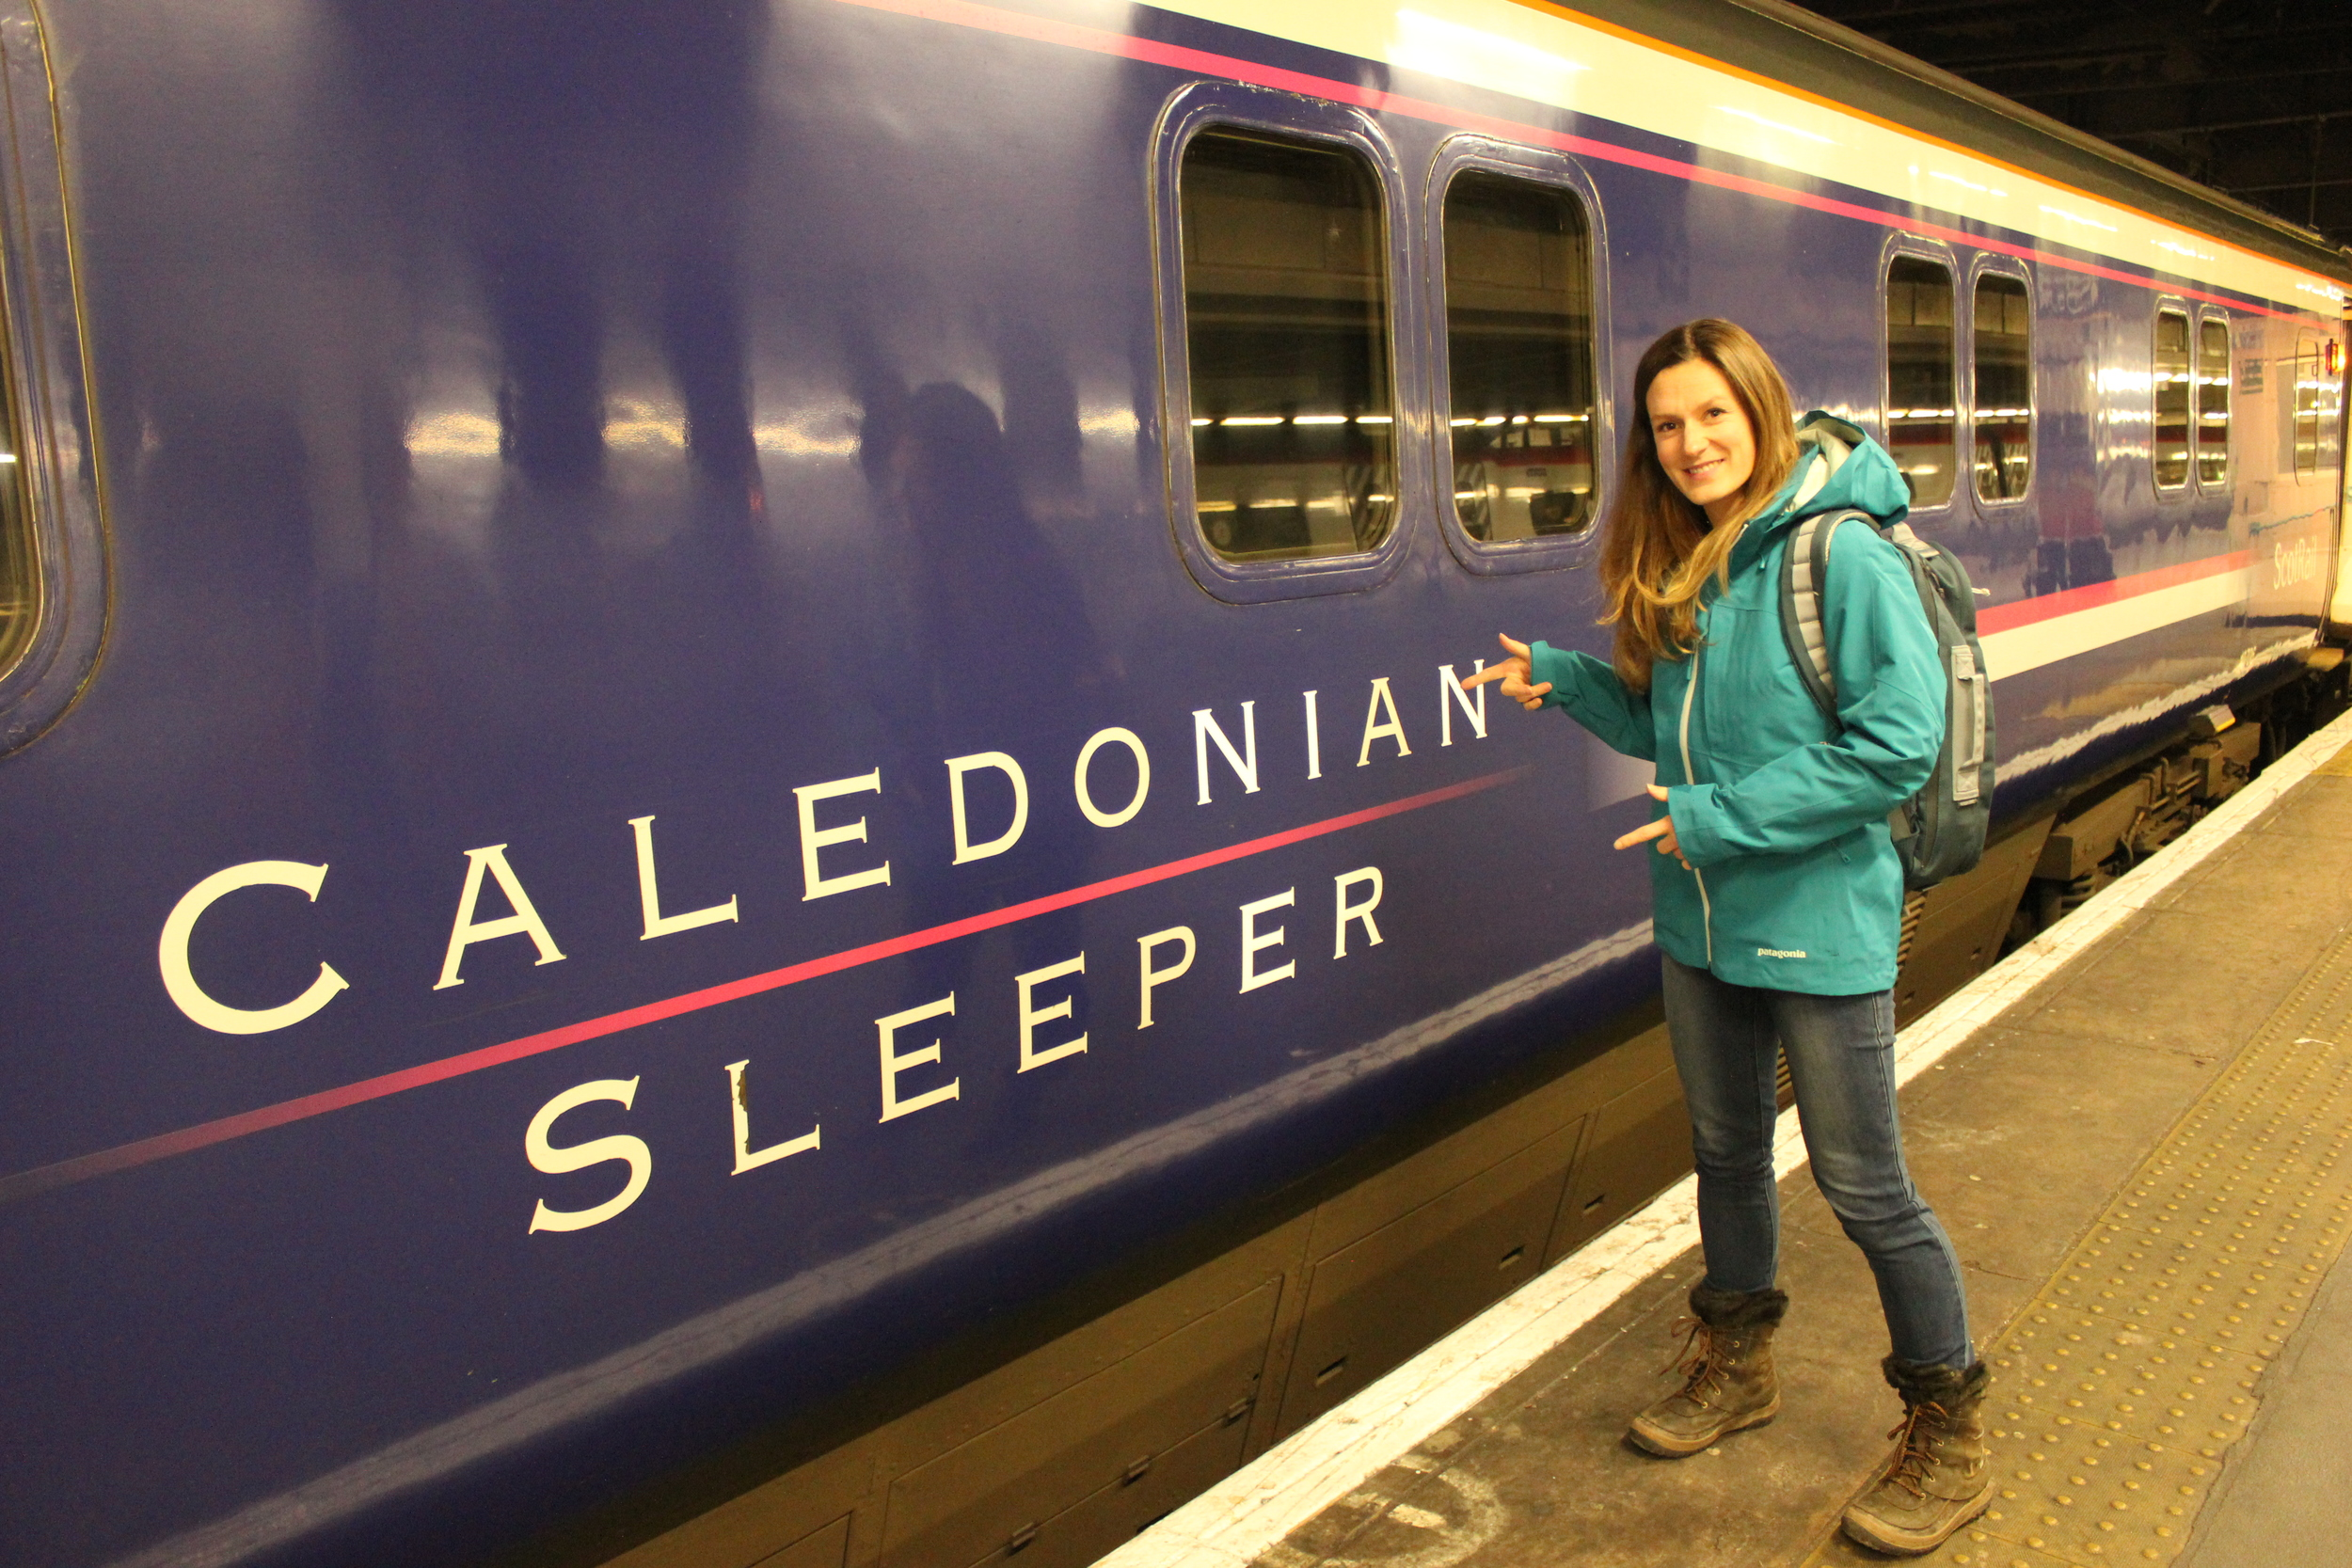 Catching the sleeper train from London